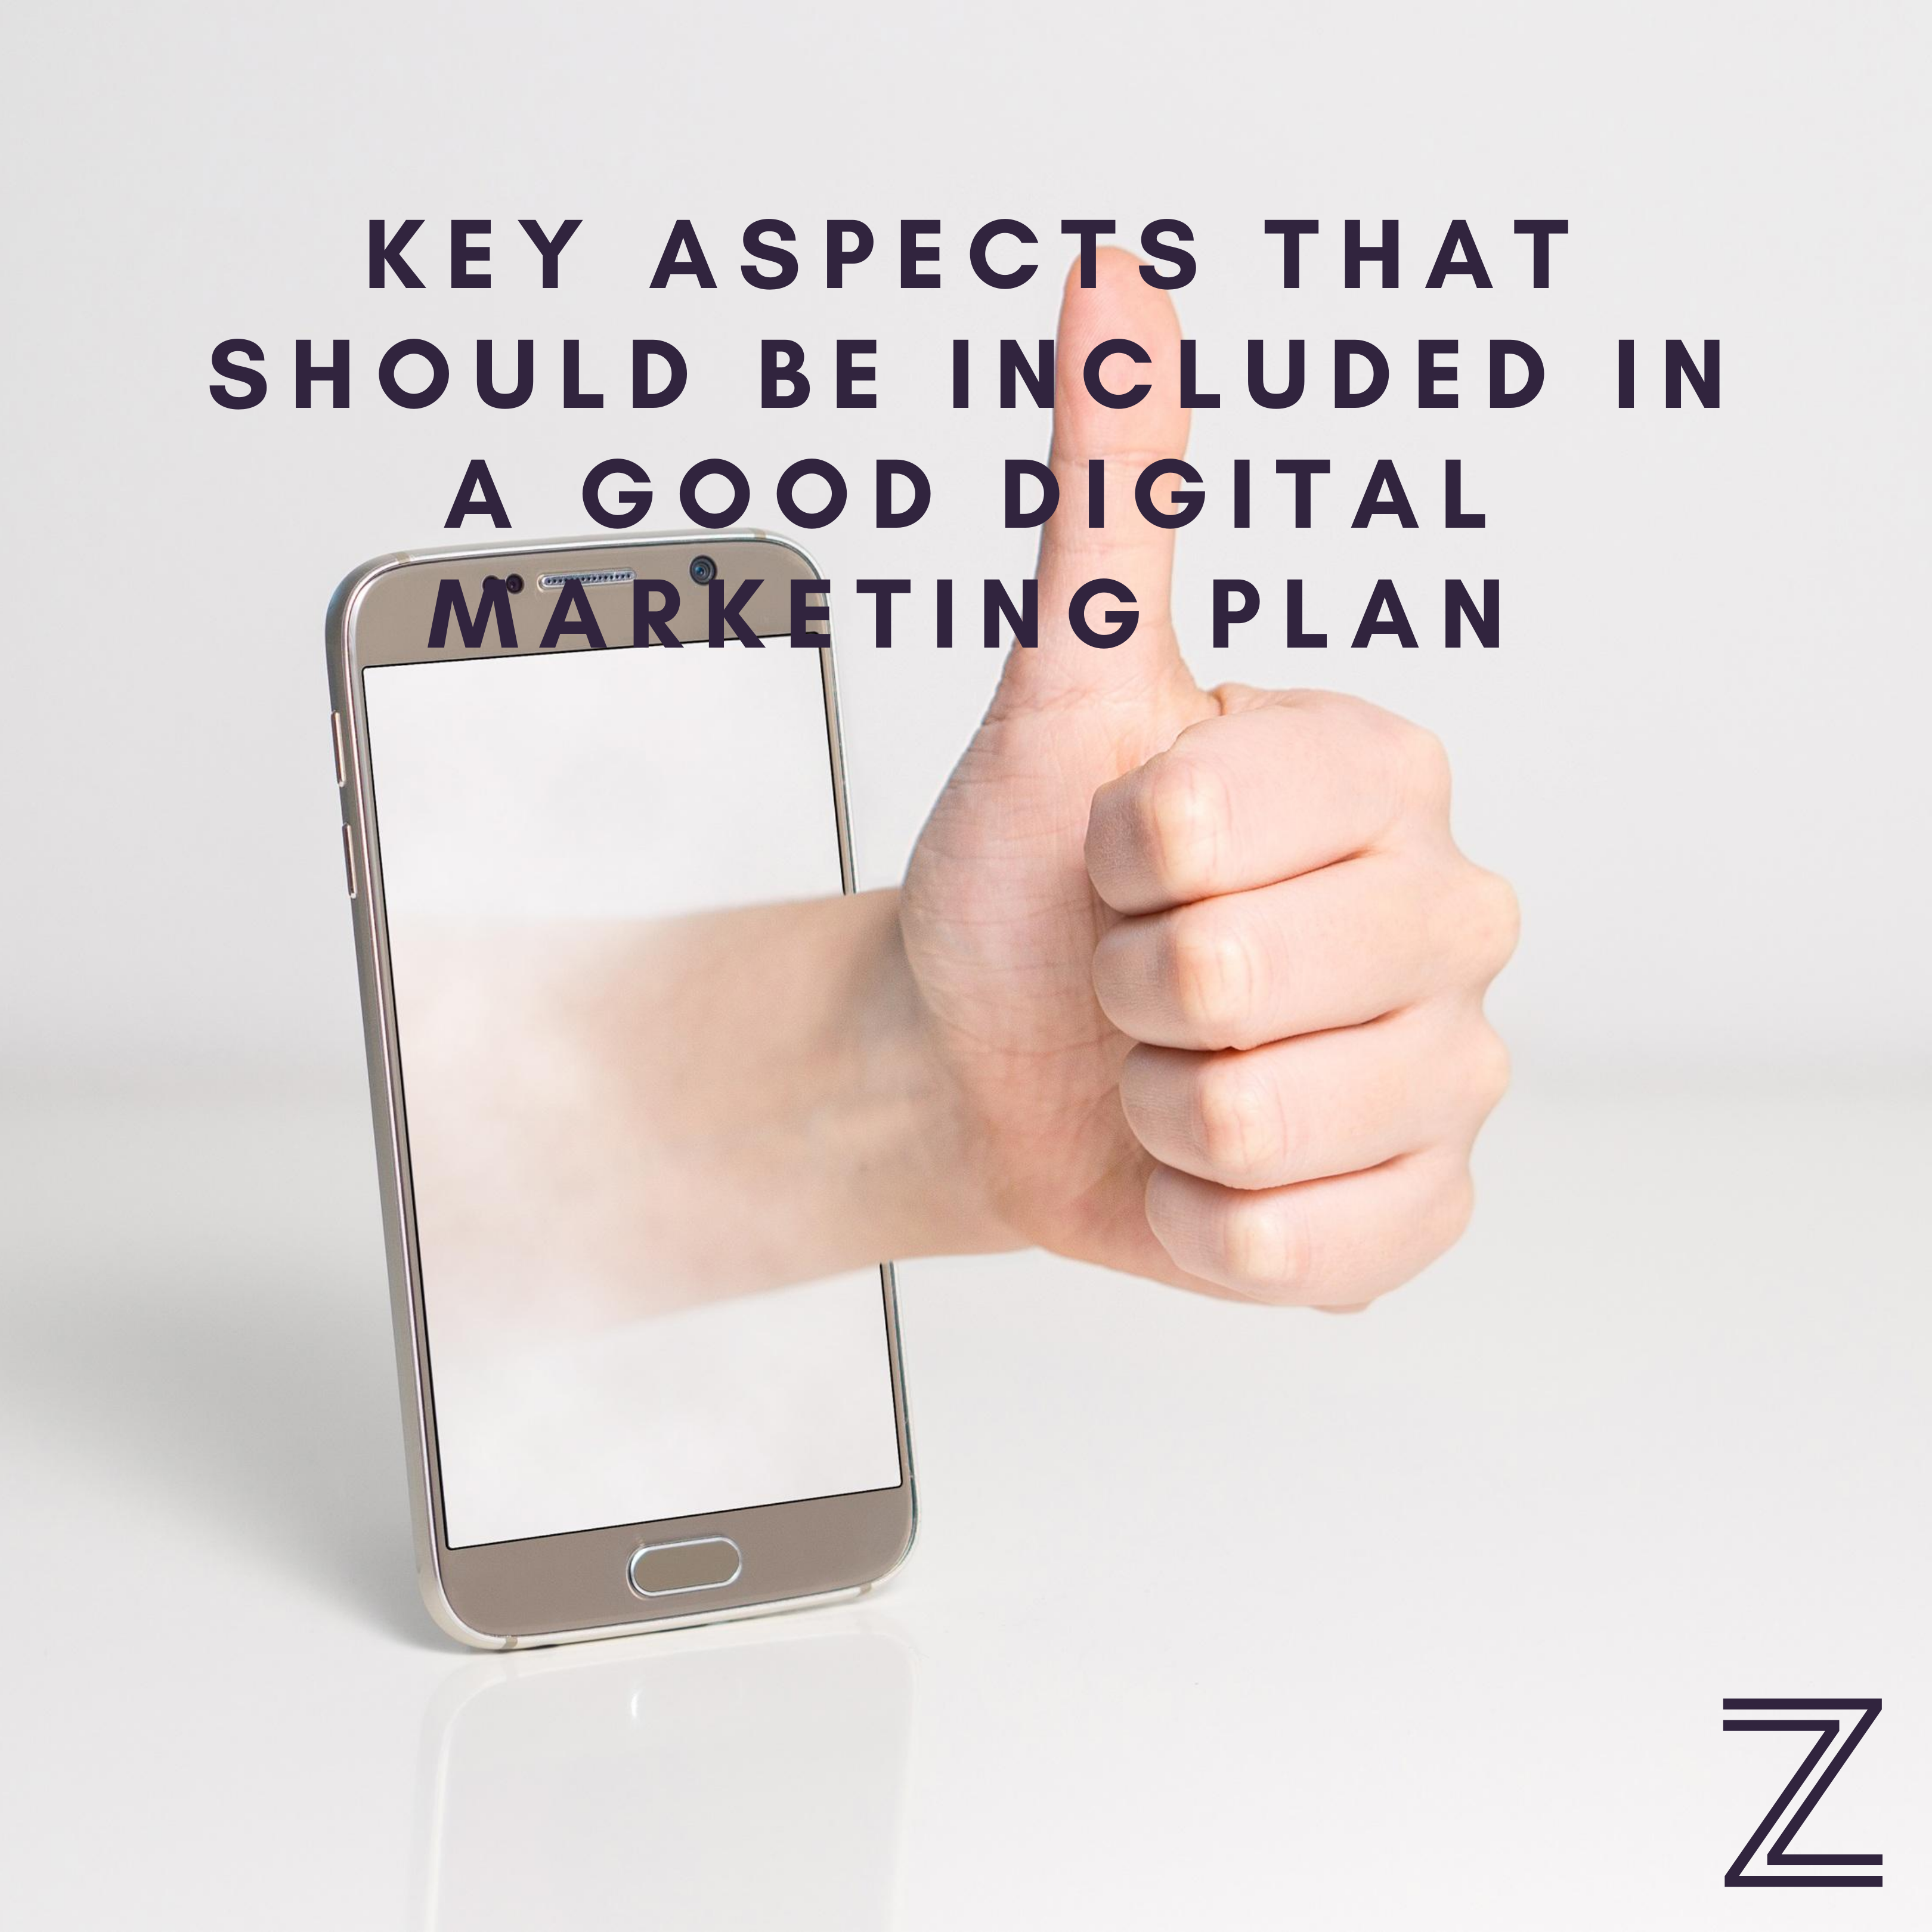 Key Aspects That Should Be Included in a Good Digital Marketing Plan